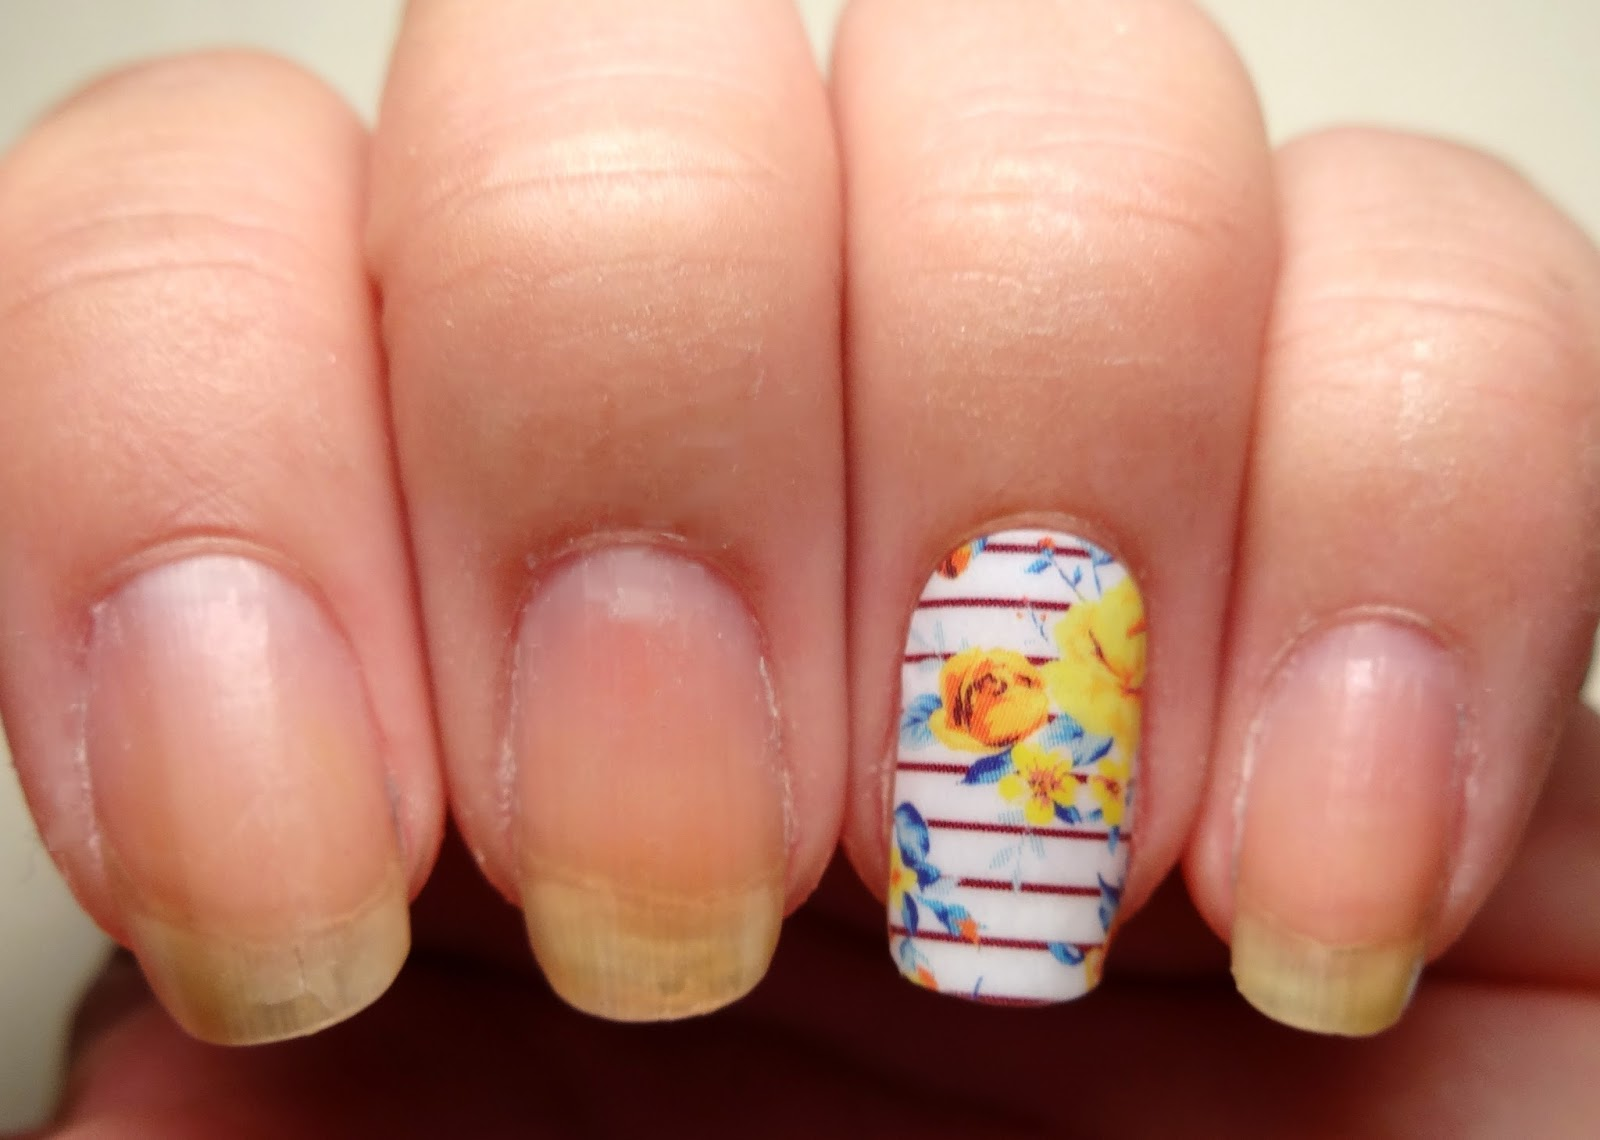 Apply Wrap to Nail